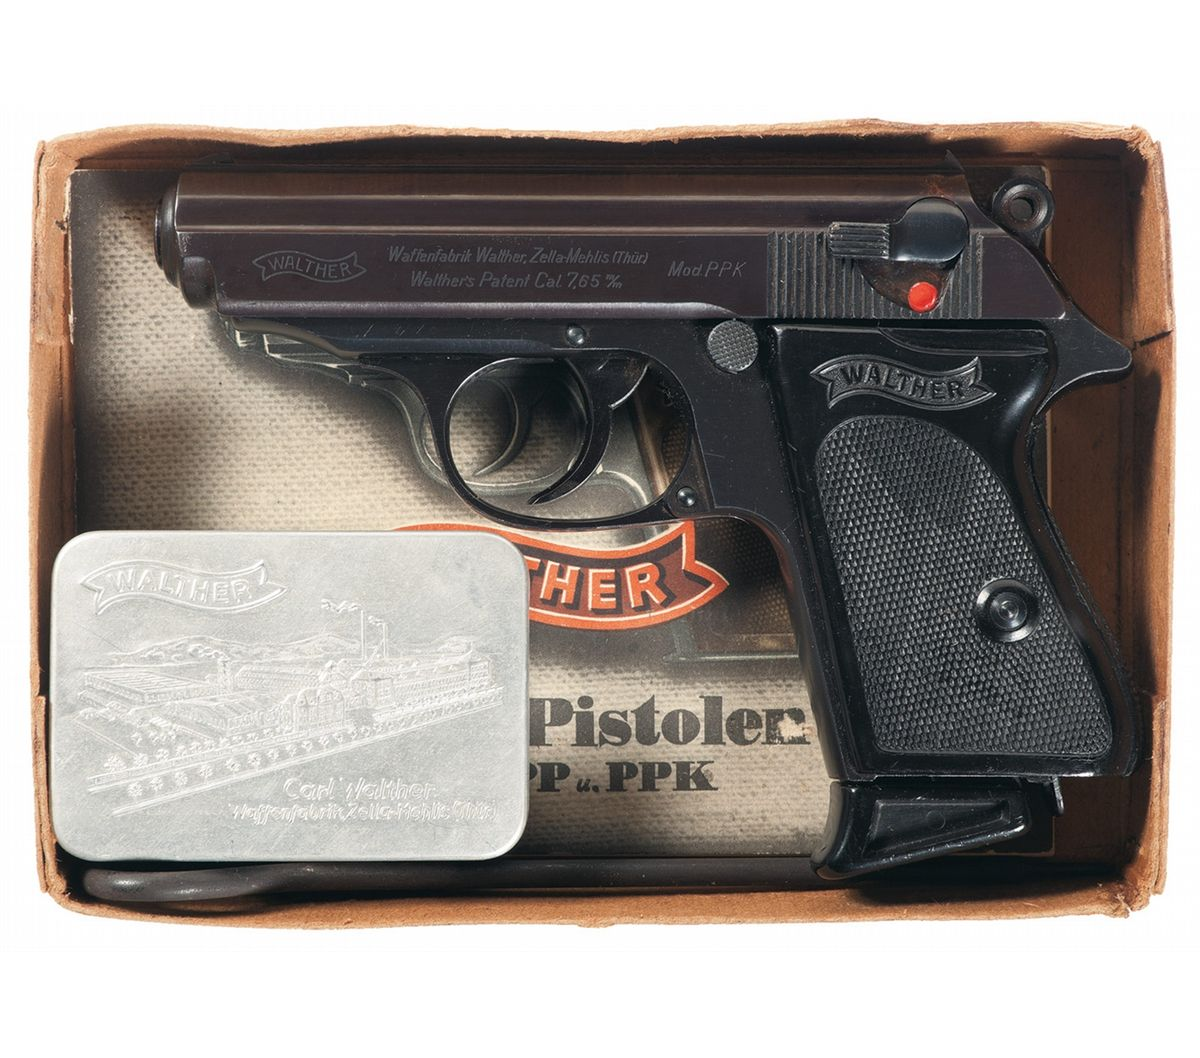 Exceptional Pre-War Walther PPK with PP Walther Box